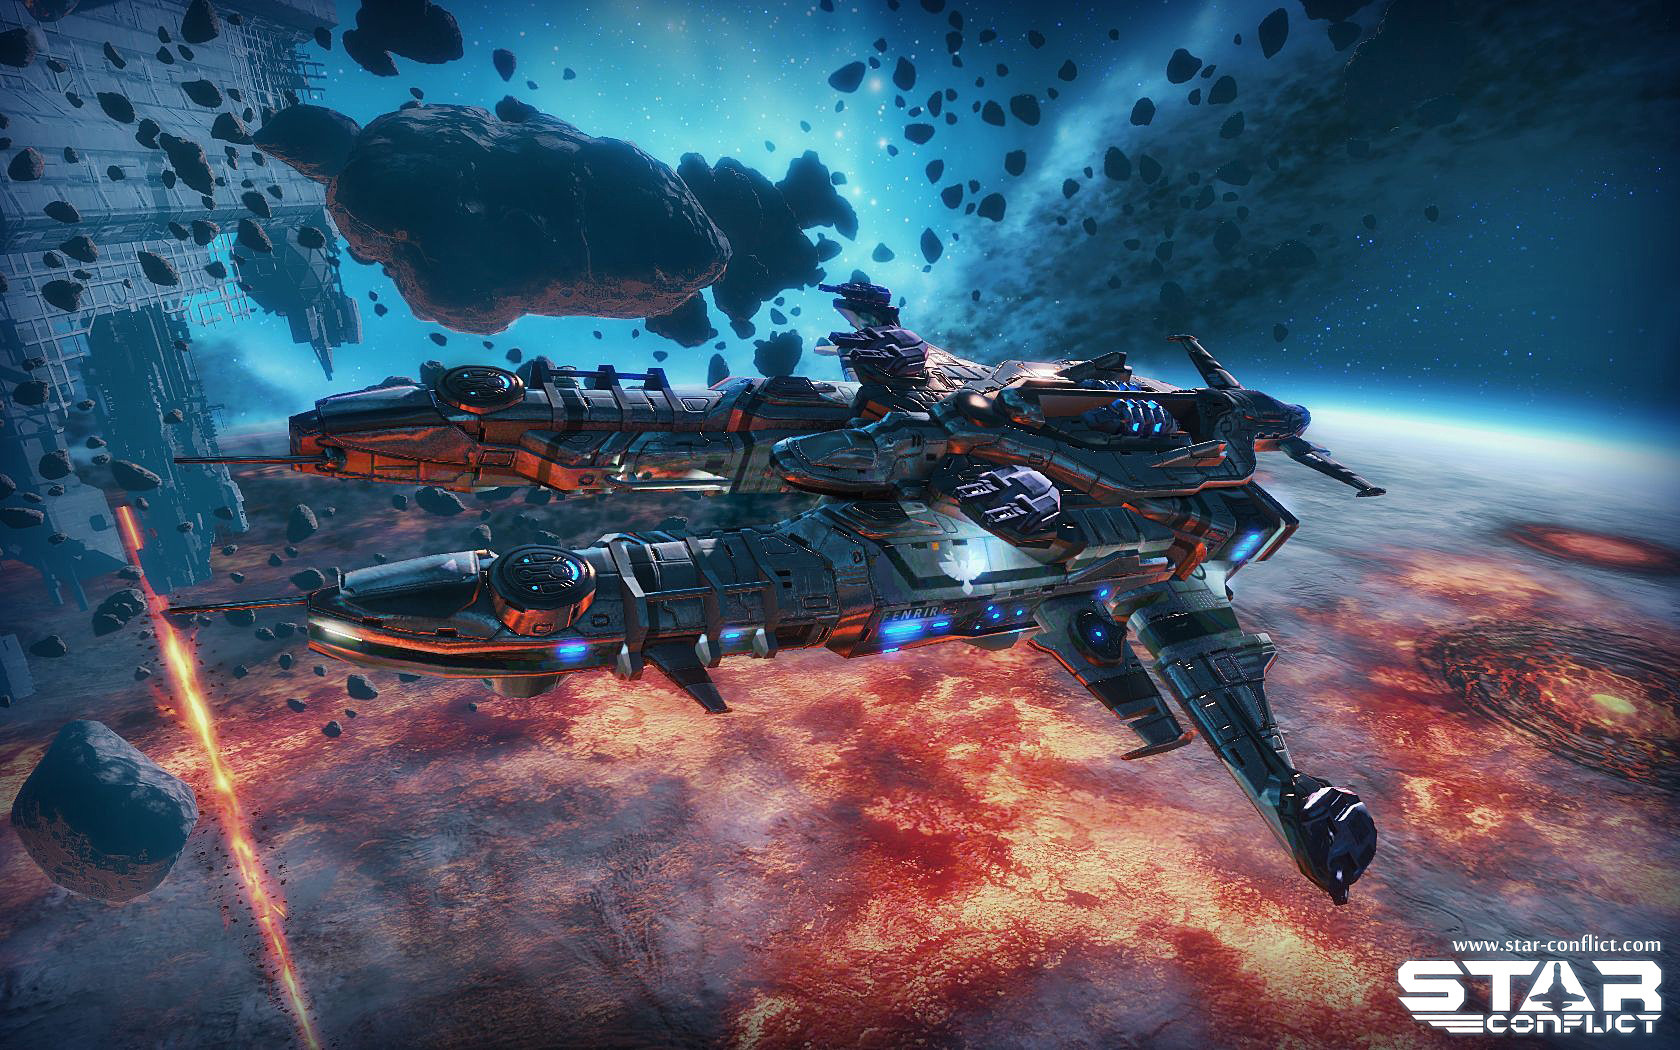 10. Star Conflict